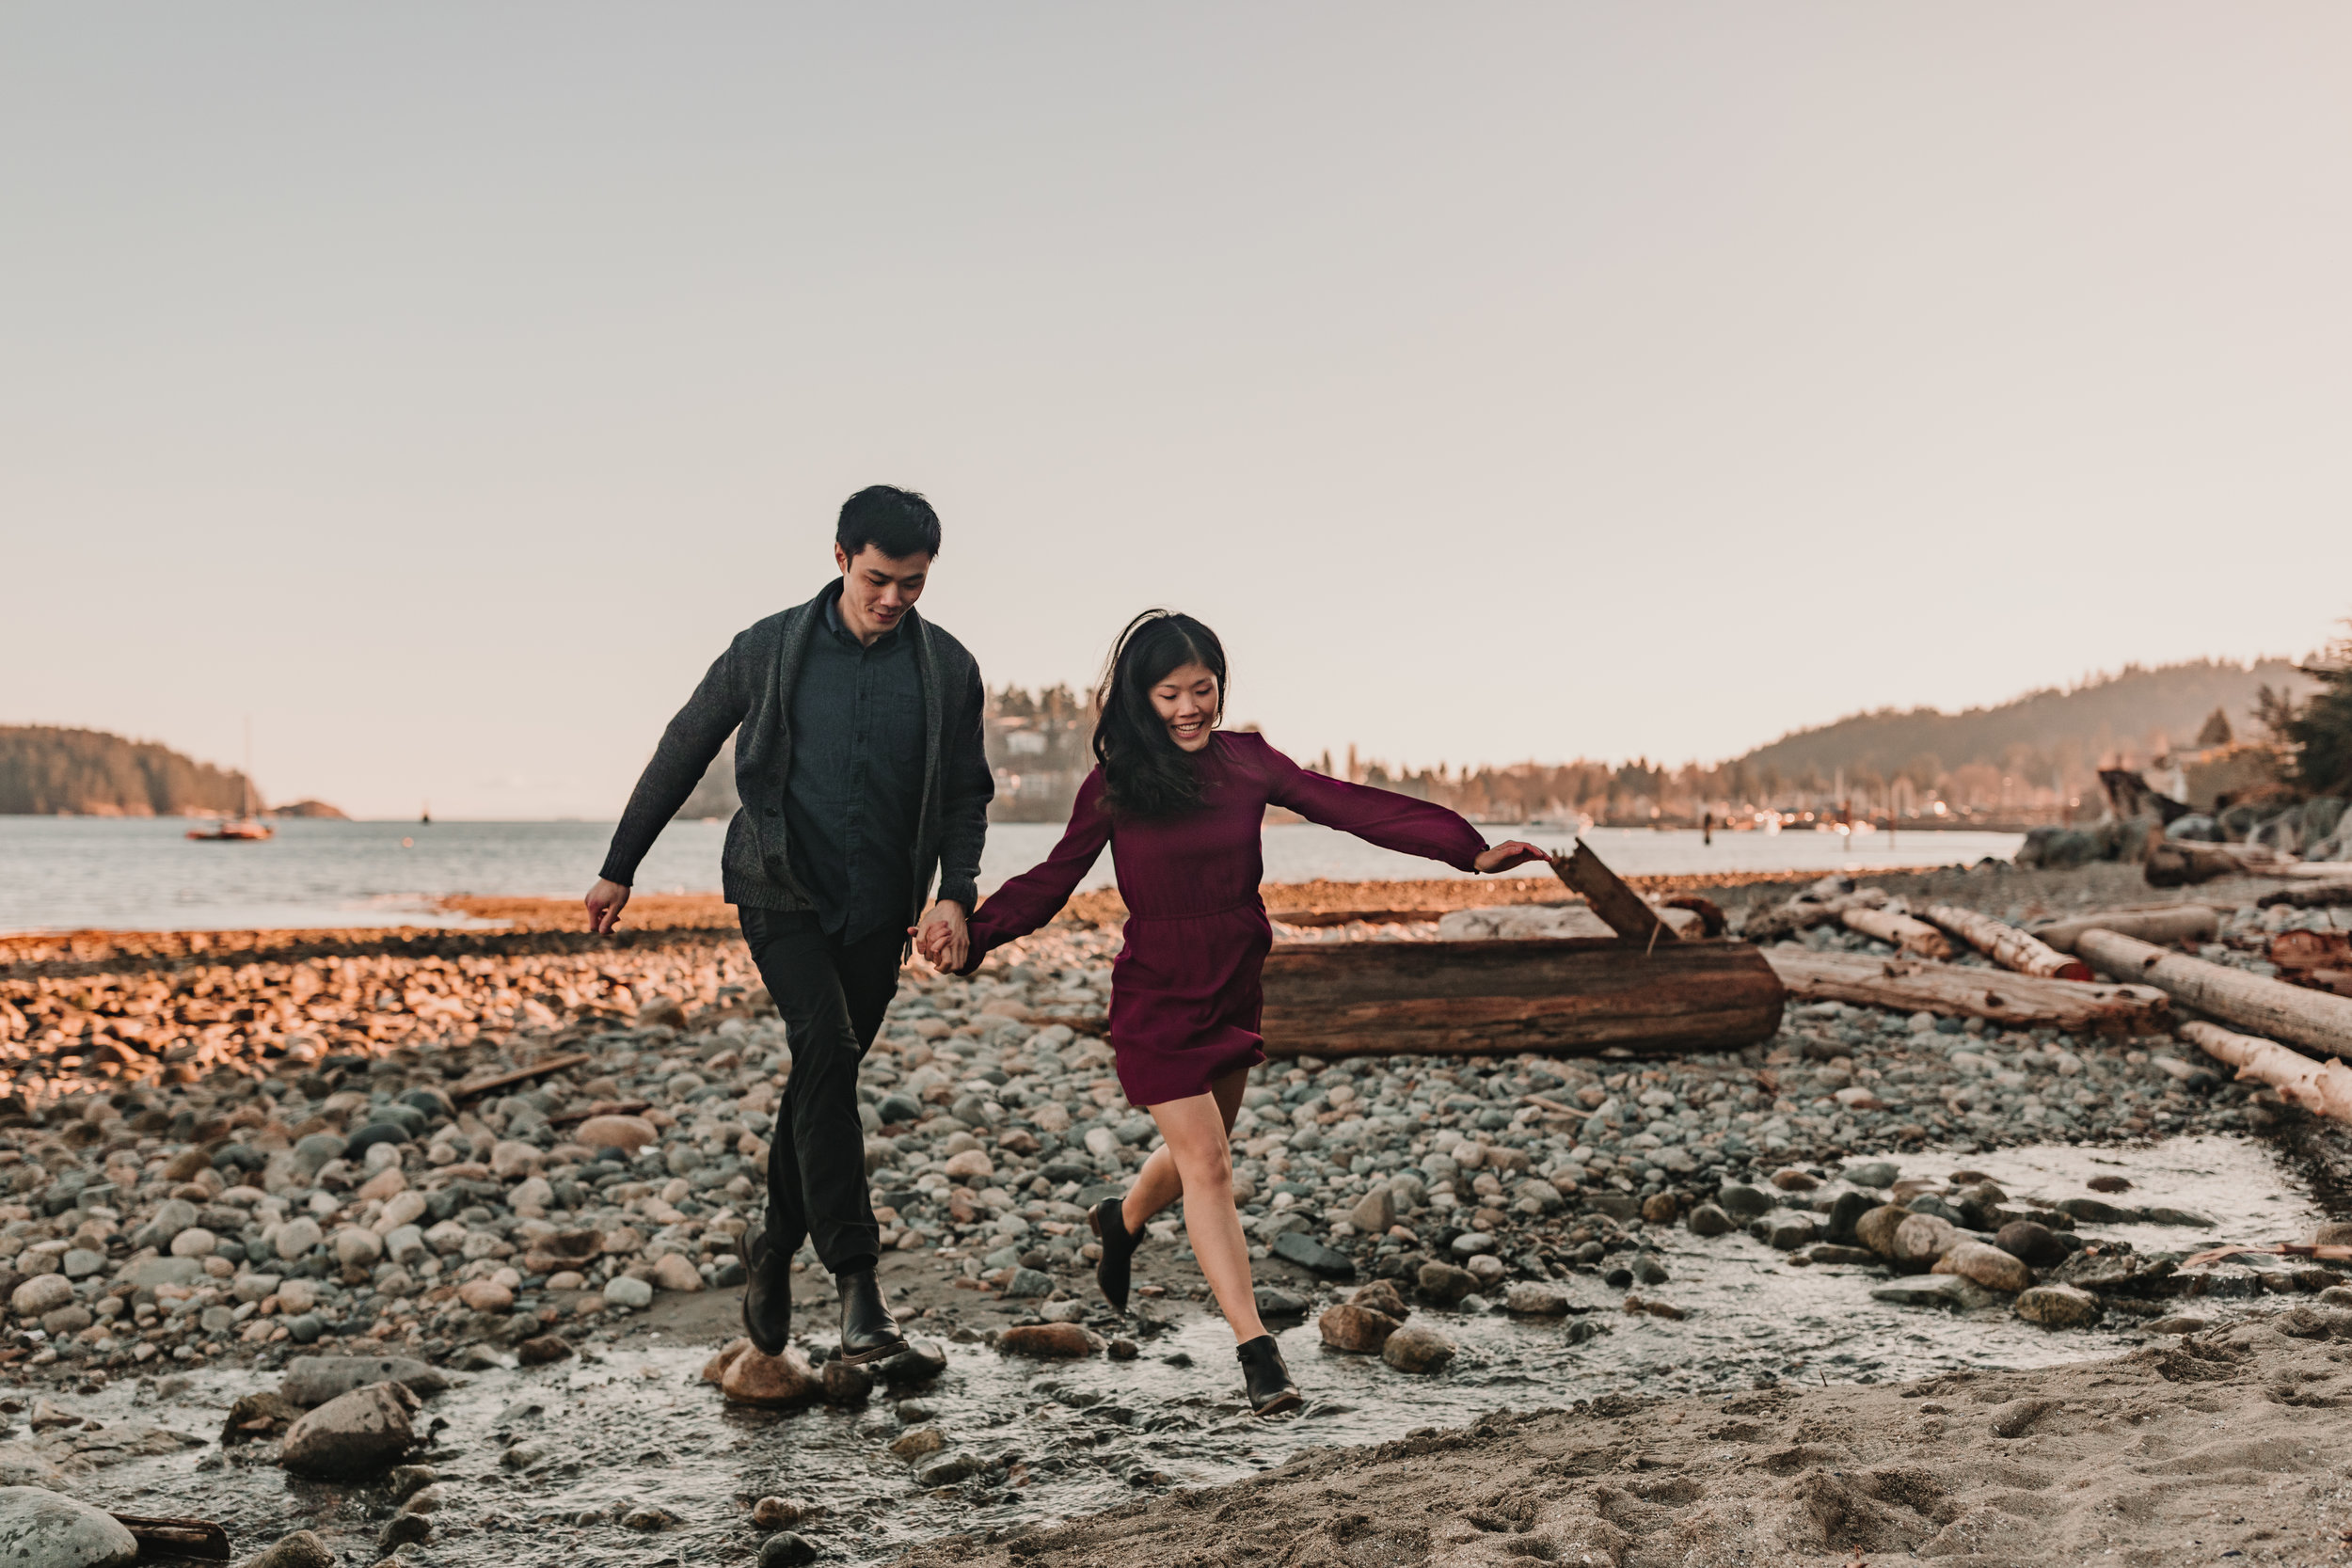 Sunshine Coast Beach Engagement Photos — Jennifer Picard Photography — Vancouver Wedding Photographer & Videographer — 470.JPG